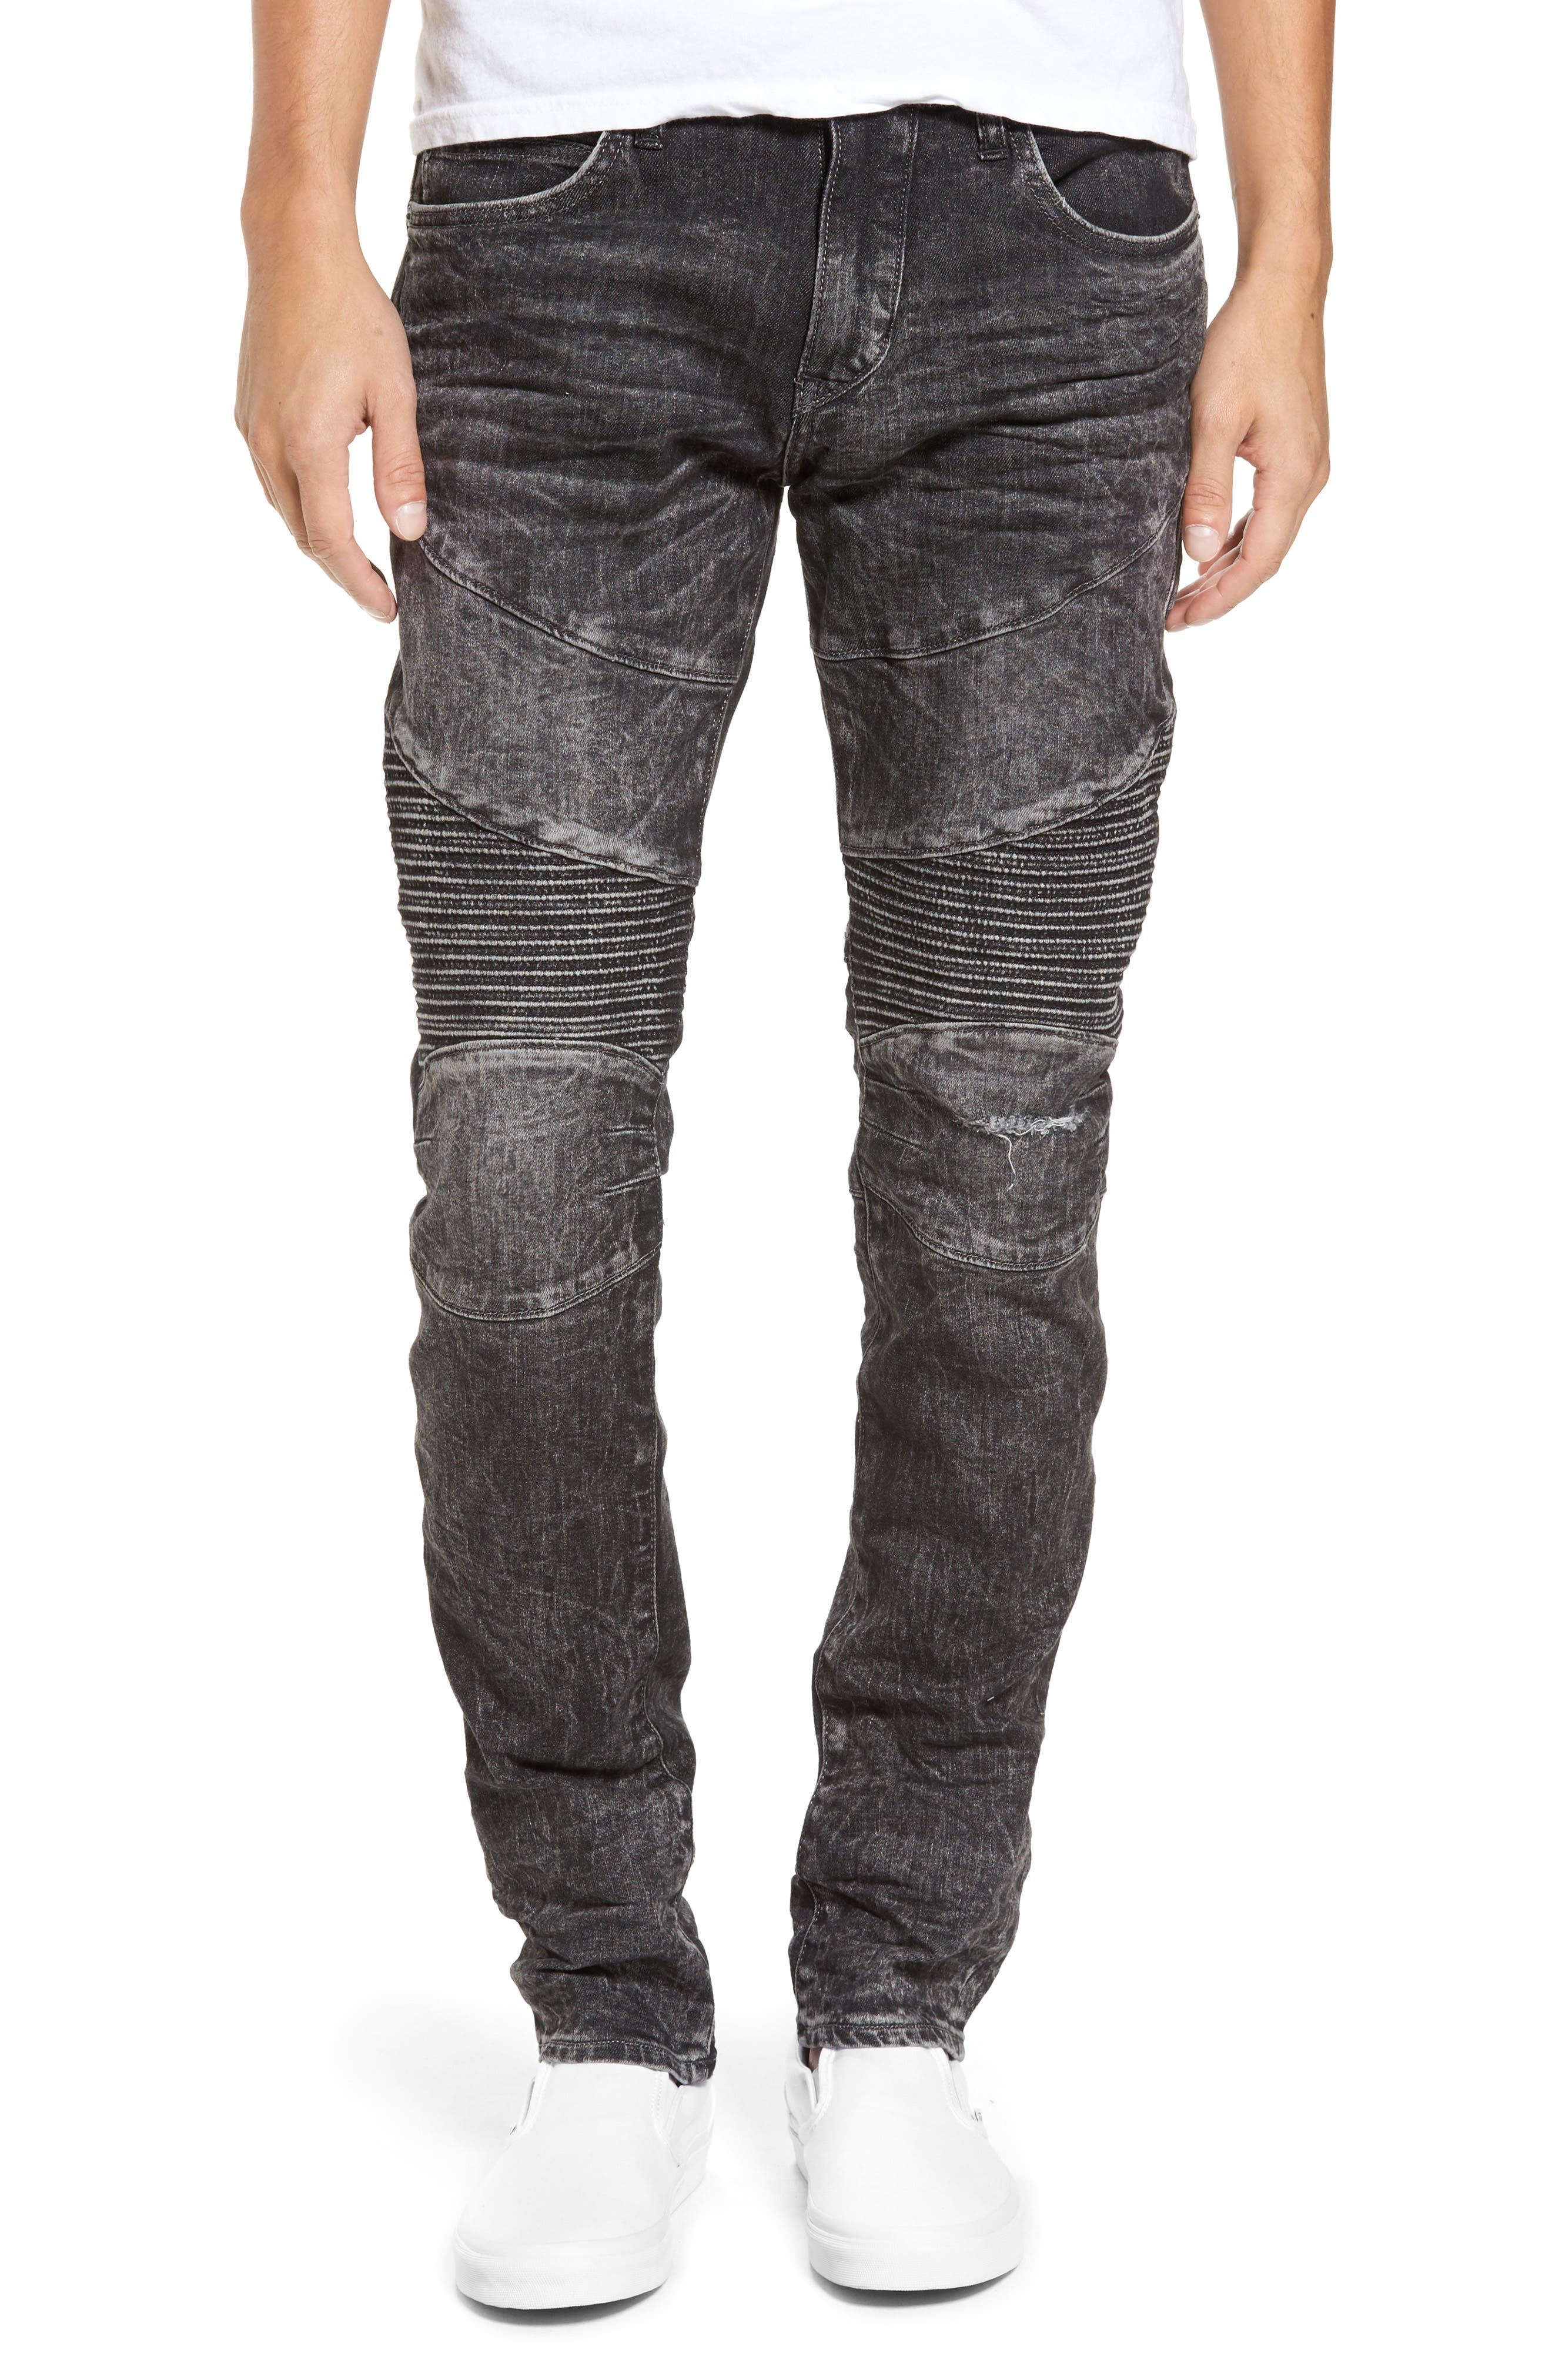 Main Image - True Religion Brand Jeans Rocco Skinny Fit Jeans (Dark Raven)